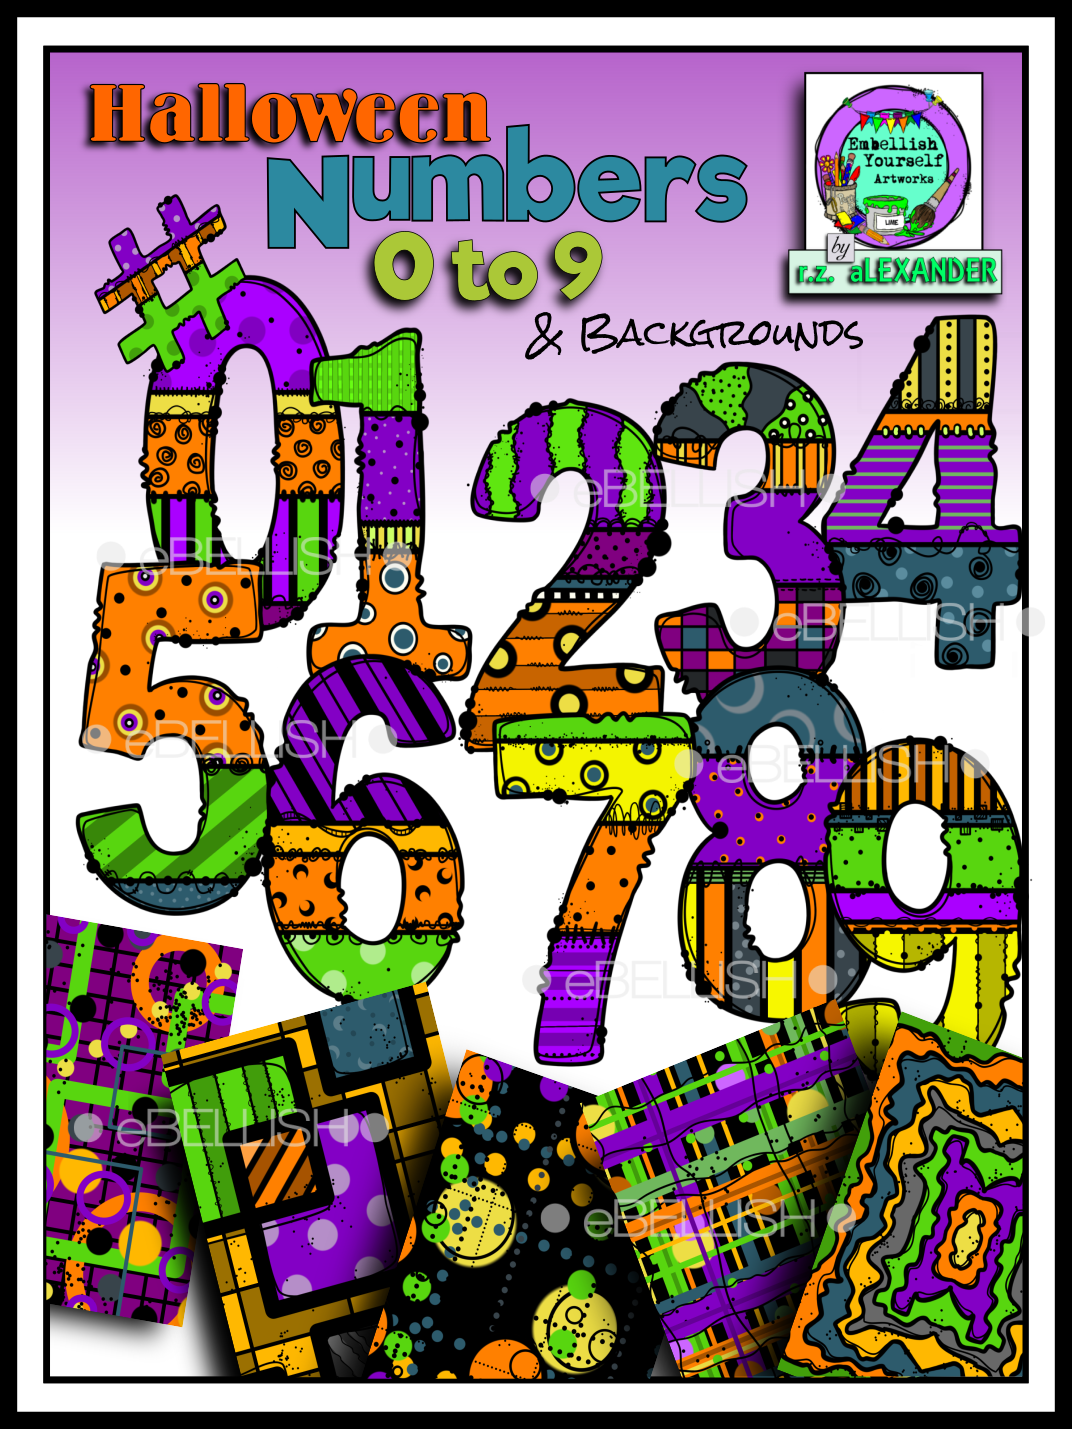 Halloween numbers clipart picture transparent Halloween Numbers (0-9) & Backgrounds   AWESOME clip art and fonts ... picture transparent